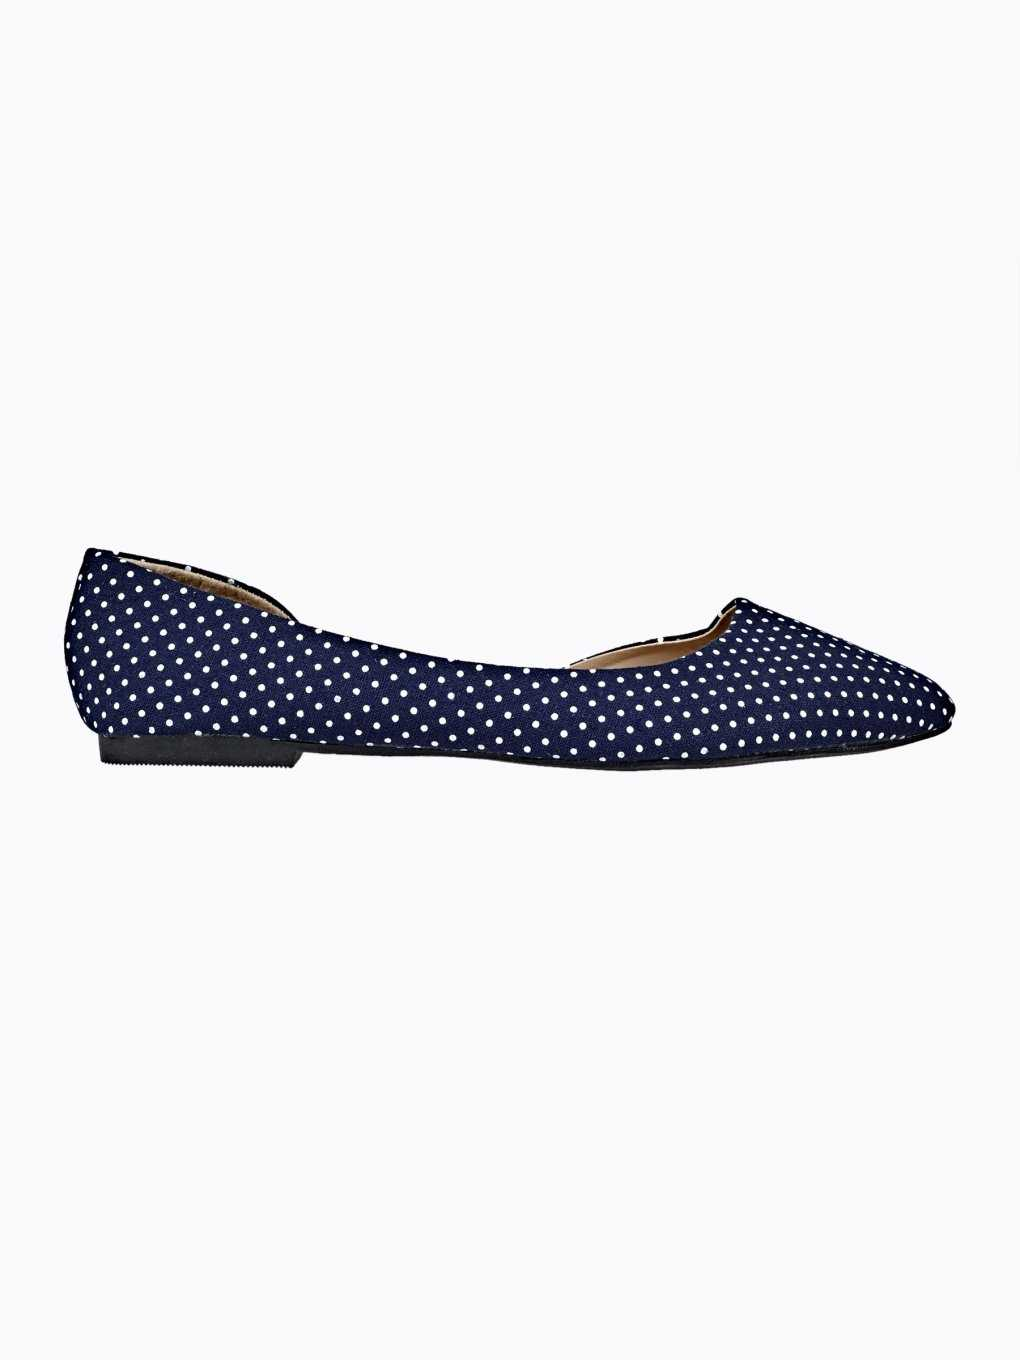 POLKA DOT CUT OUT BALLERINAS